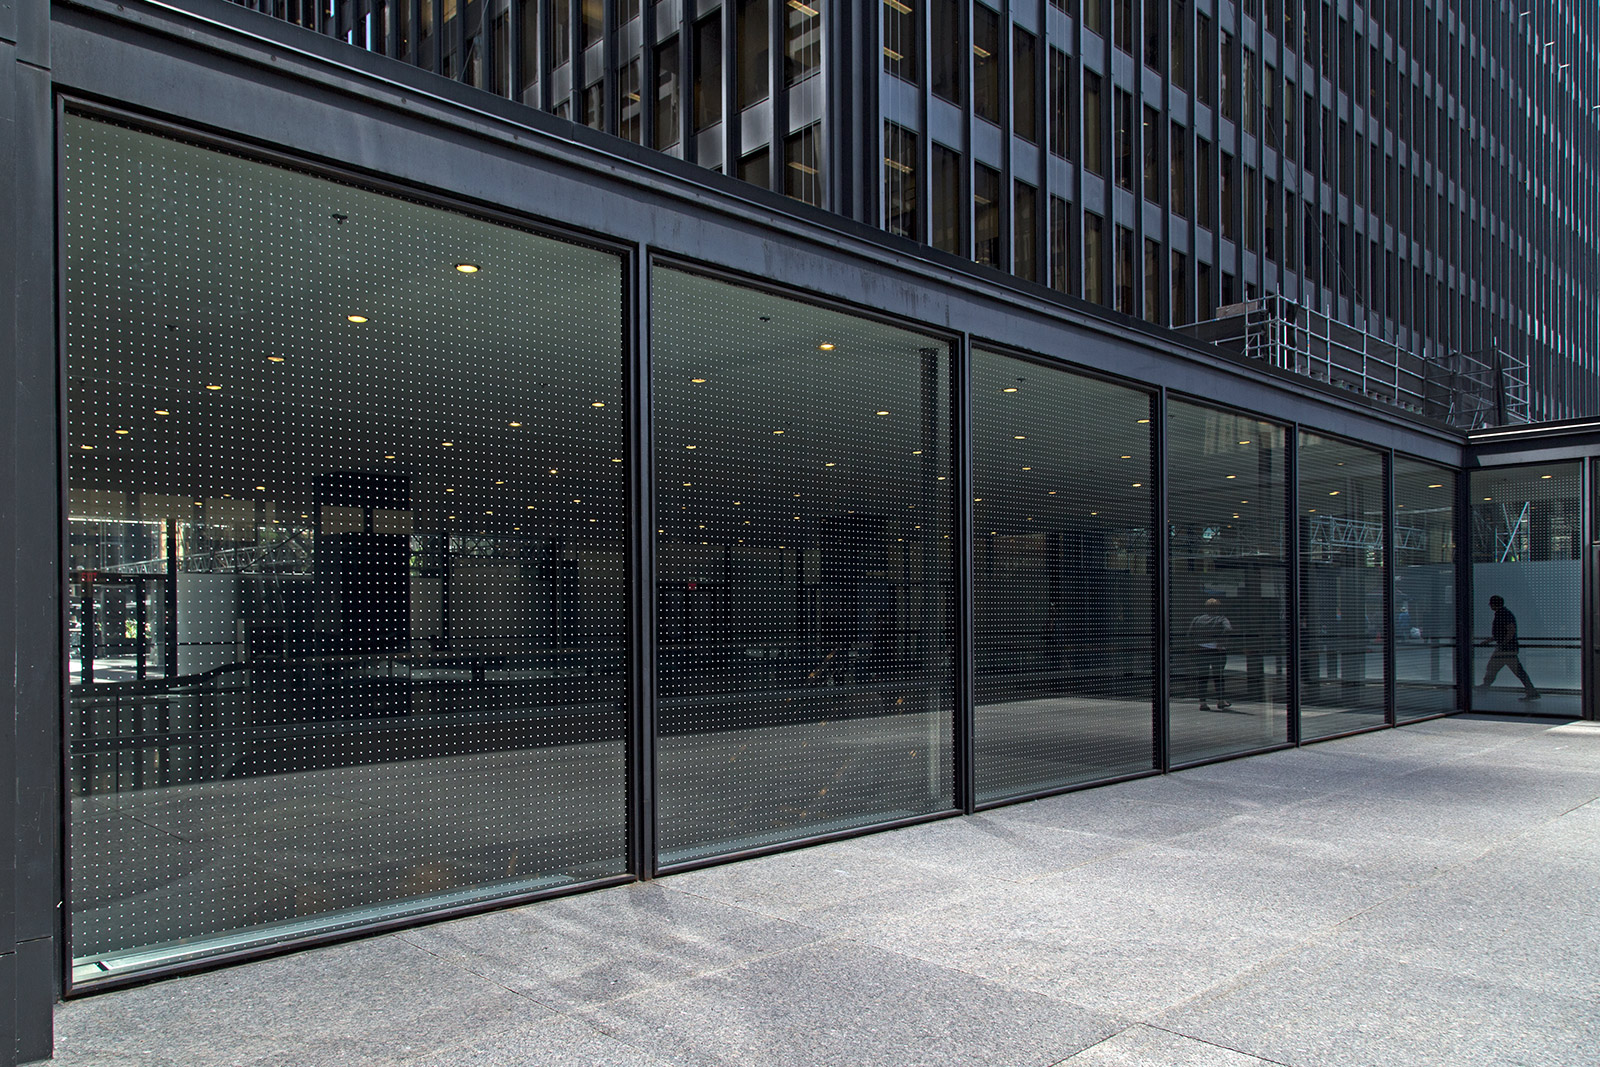 20140619. Dots on Mies van der Rohe's International Style TD Centre (Toronto).